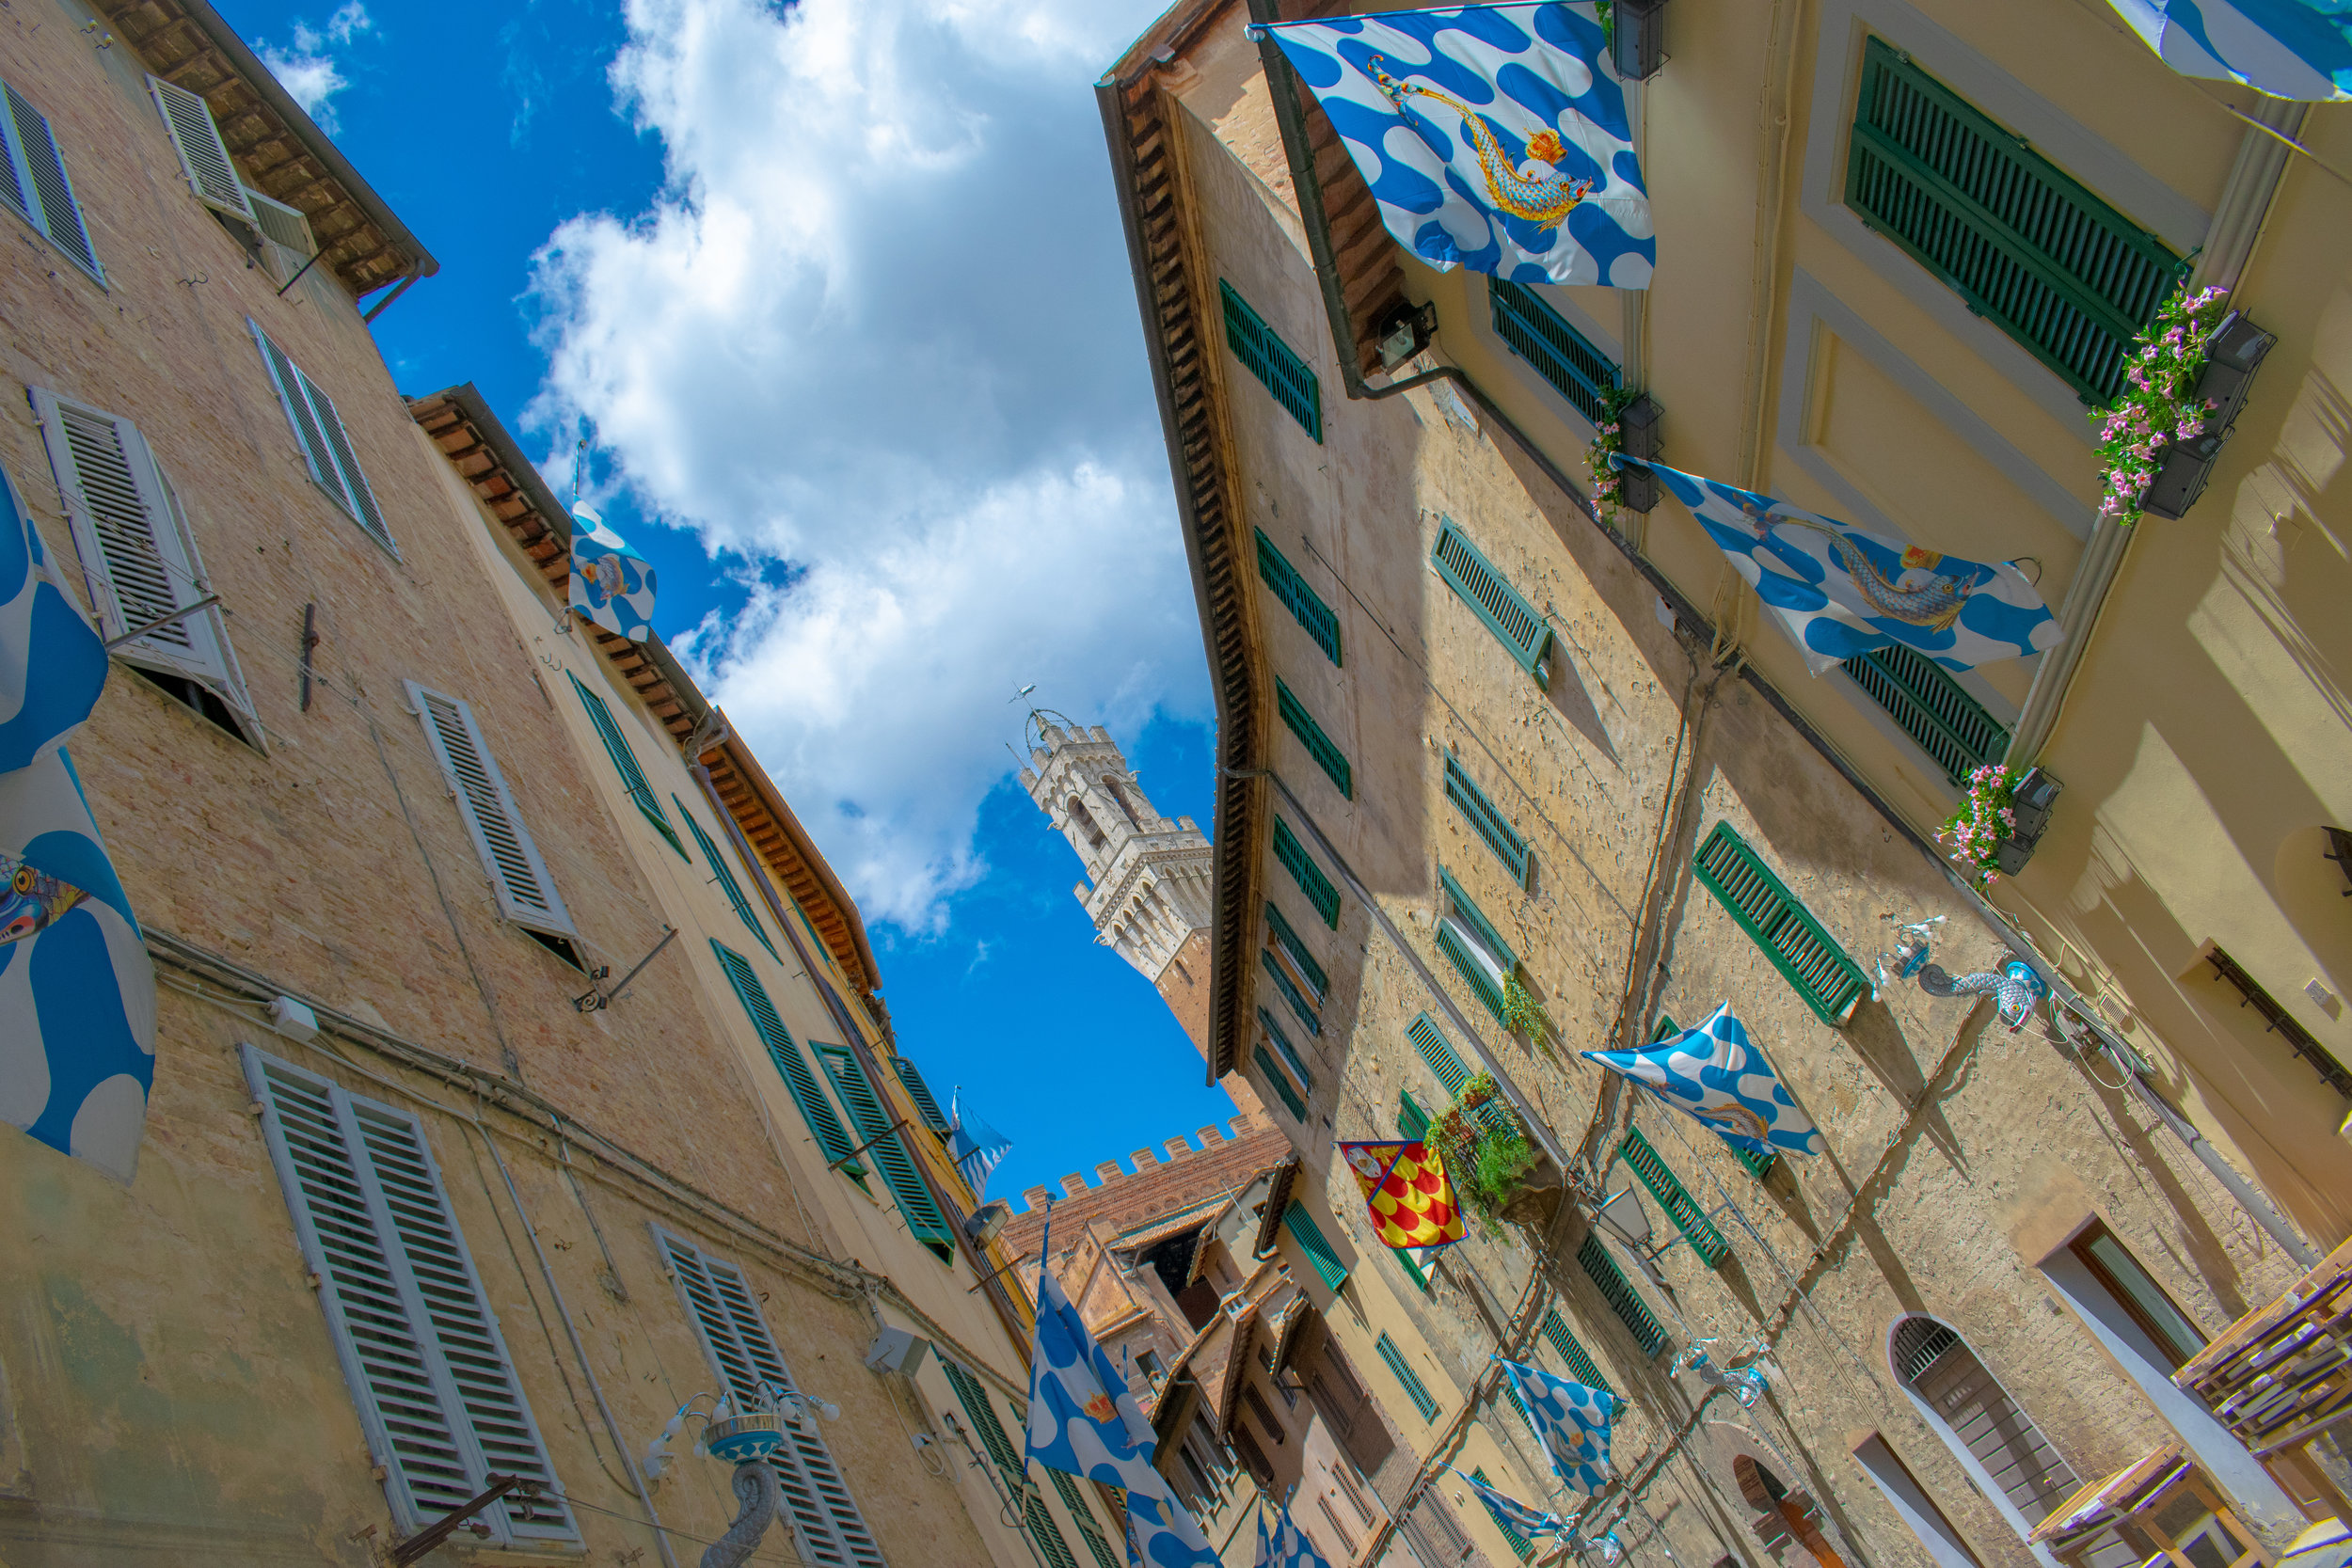 The streets of Siena decorated in house colours ready for the Palio horse race.